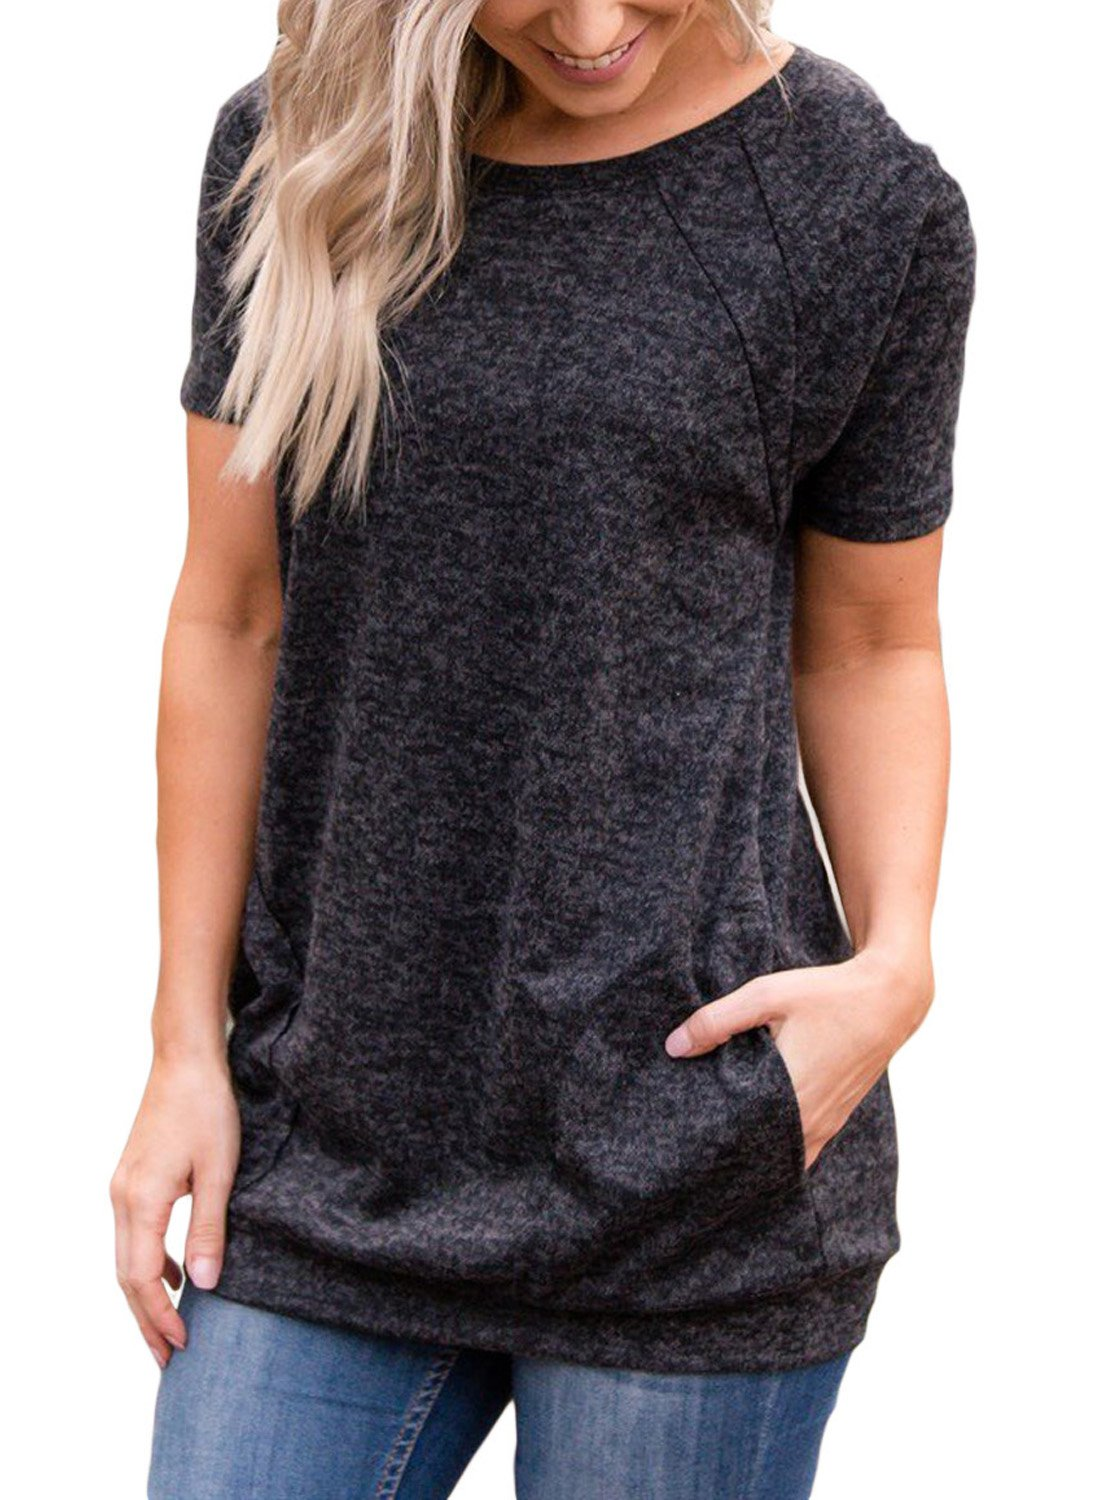 HOTAPEI Short Sleeve Summer T Shirt Women Casual Round Neck Loose Tunic Top Blouse with Pockets Black Large